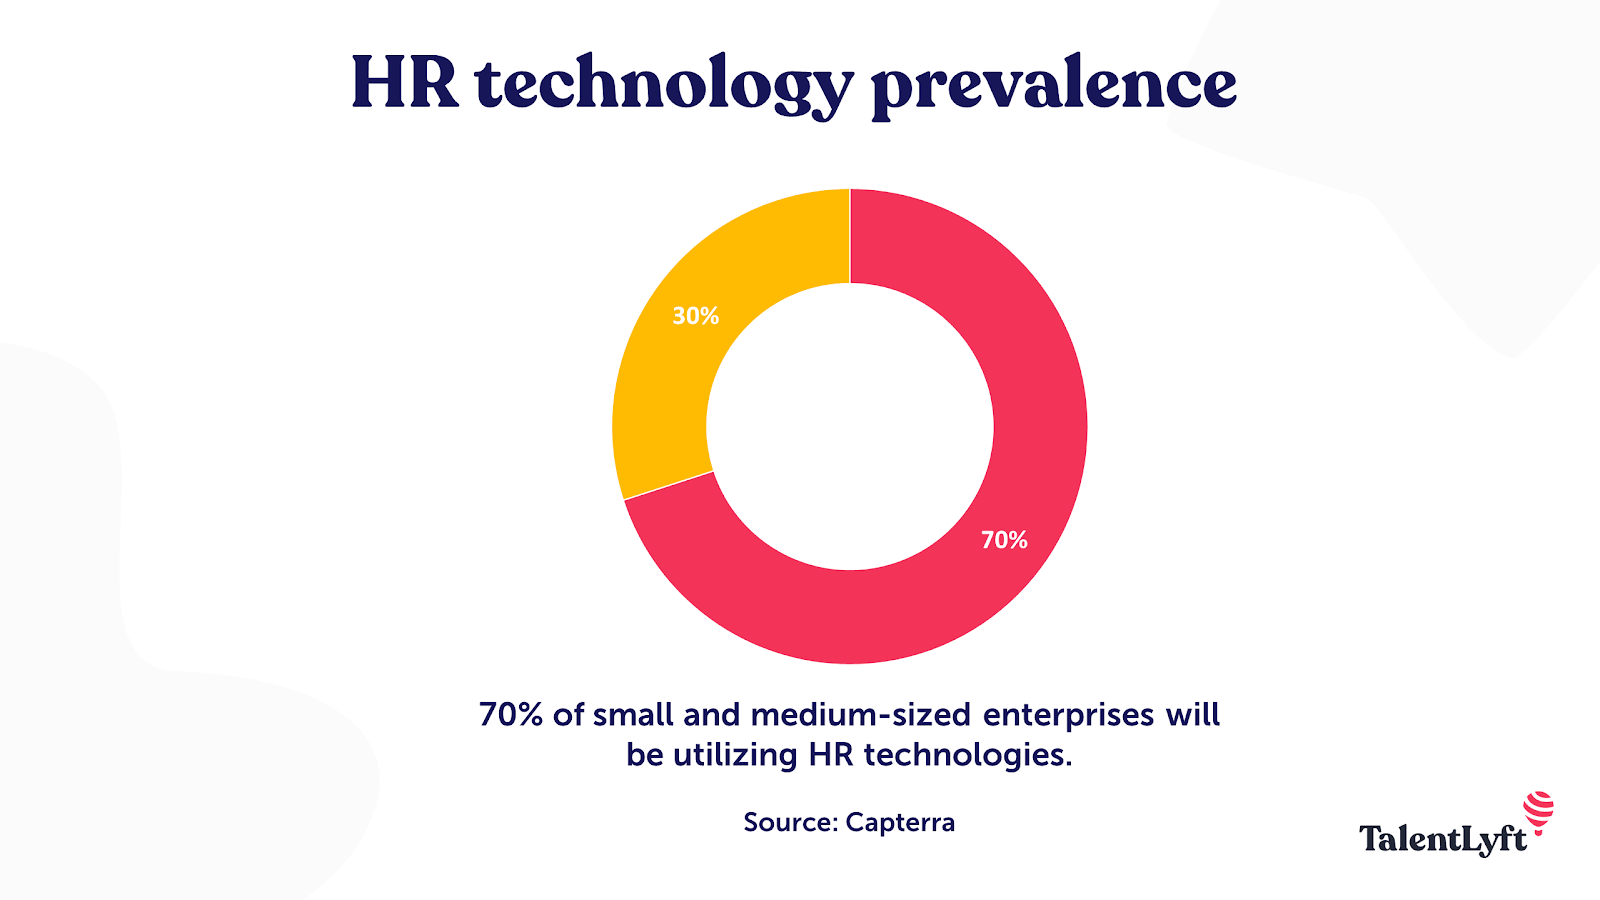 HR technology prevalence statistic